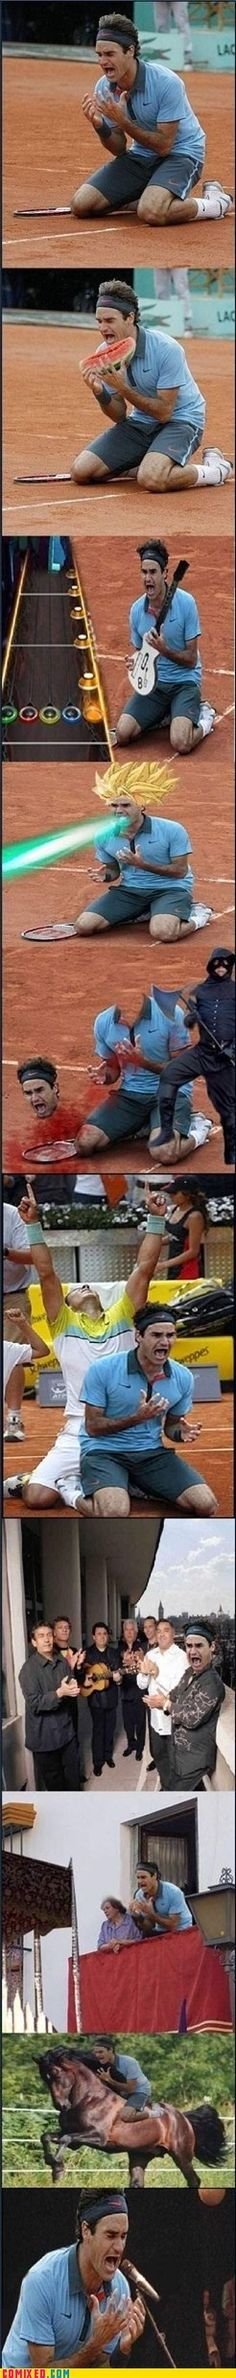 Why Roger? ...Why?